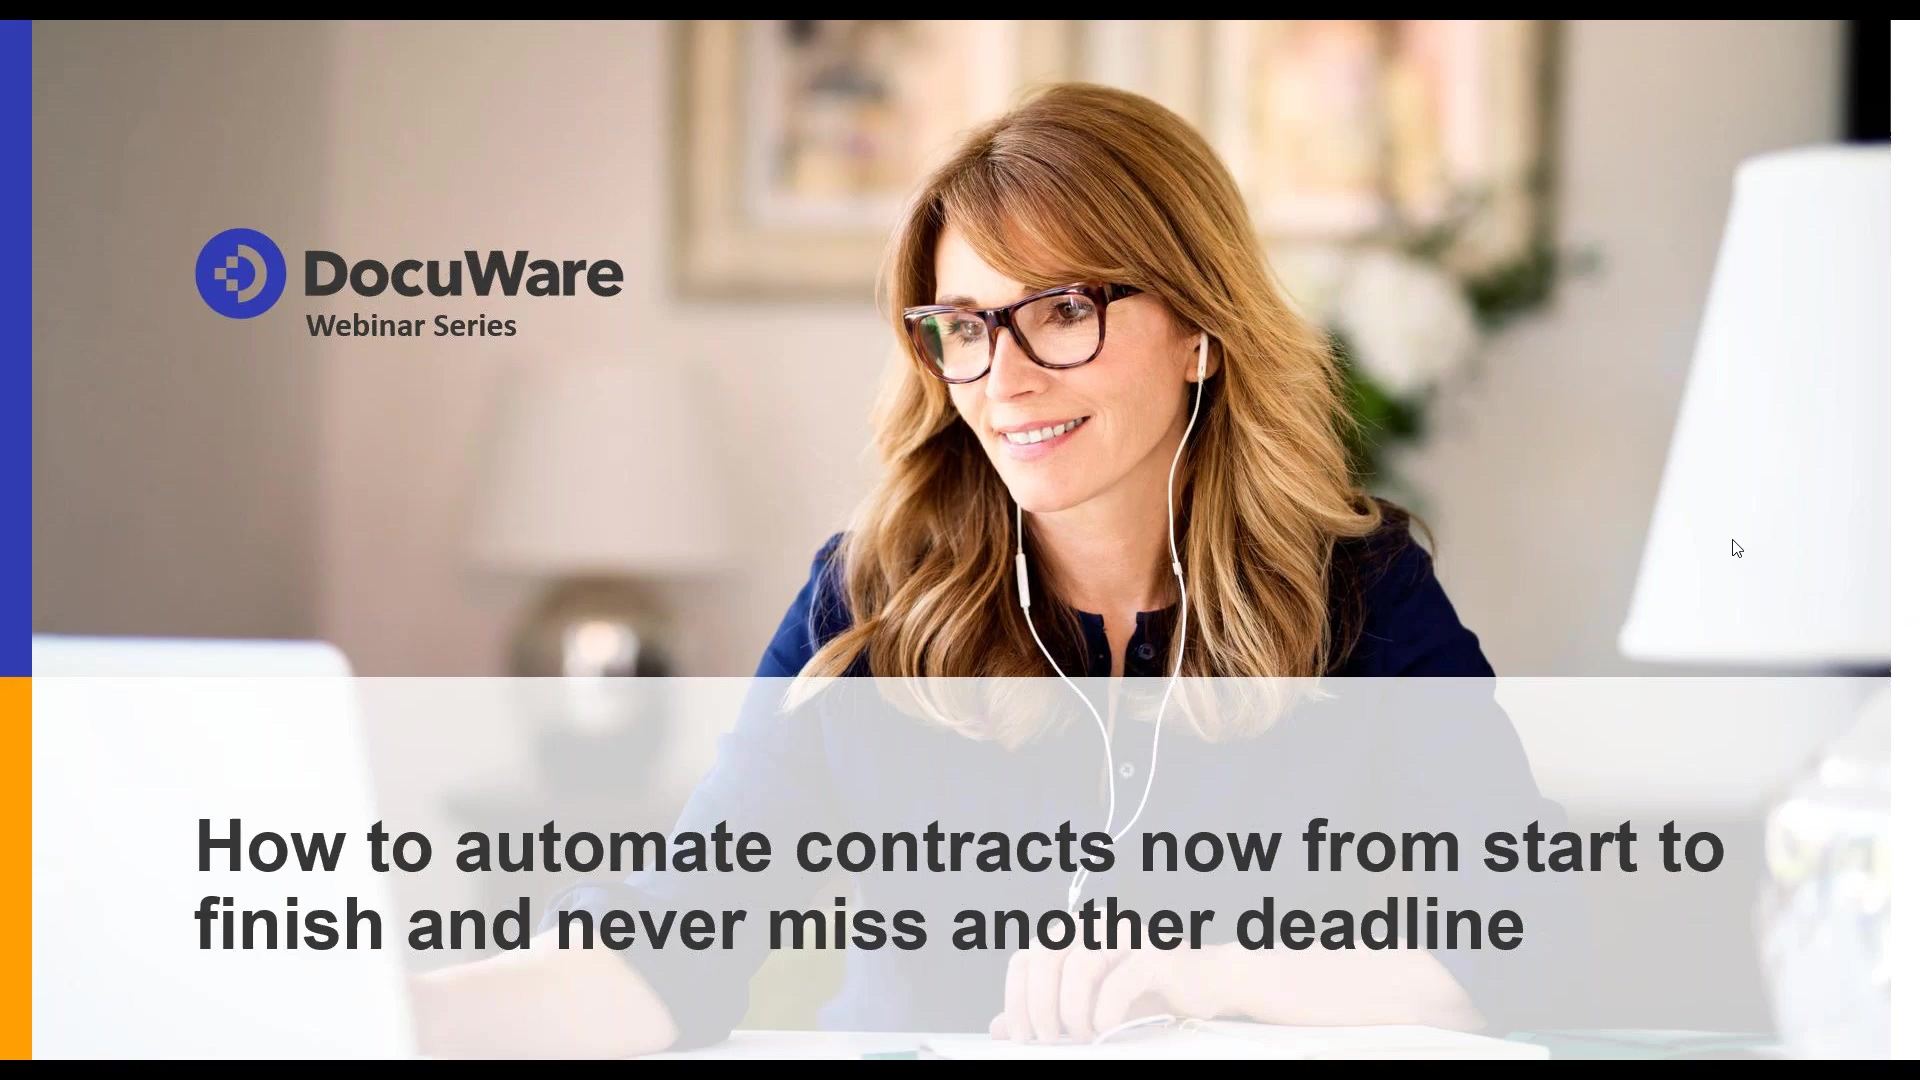 EN Americas - 2021-01 - How to automate contracts - Recording - 41019254705